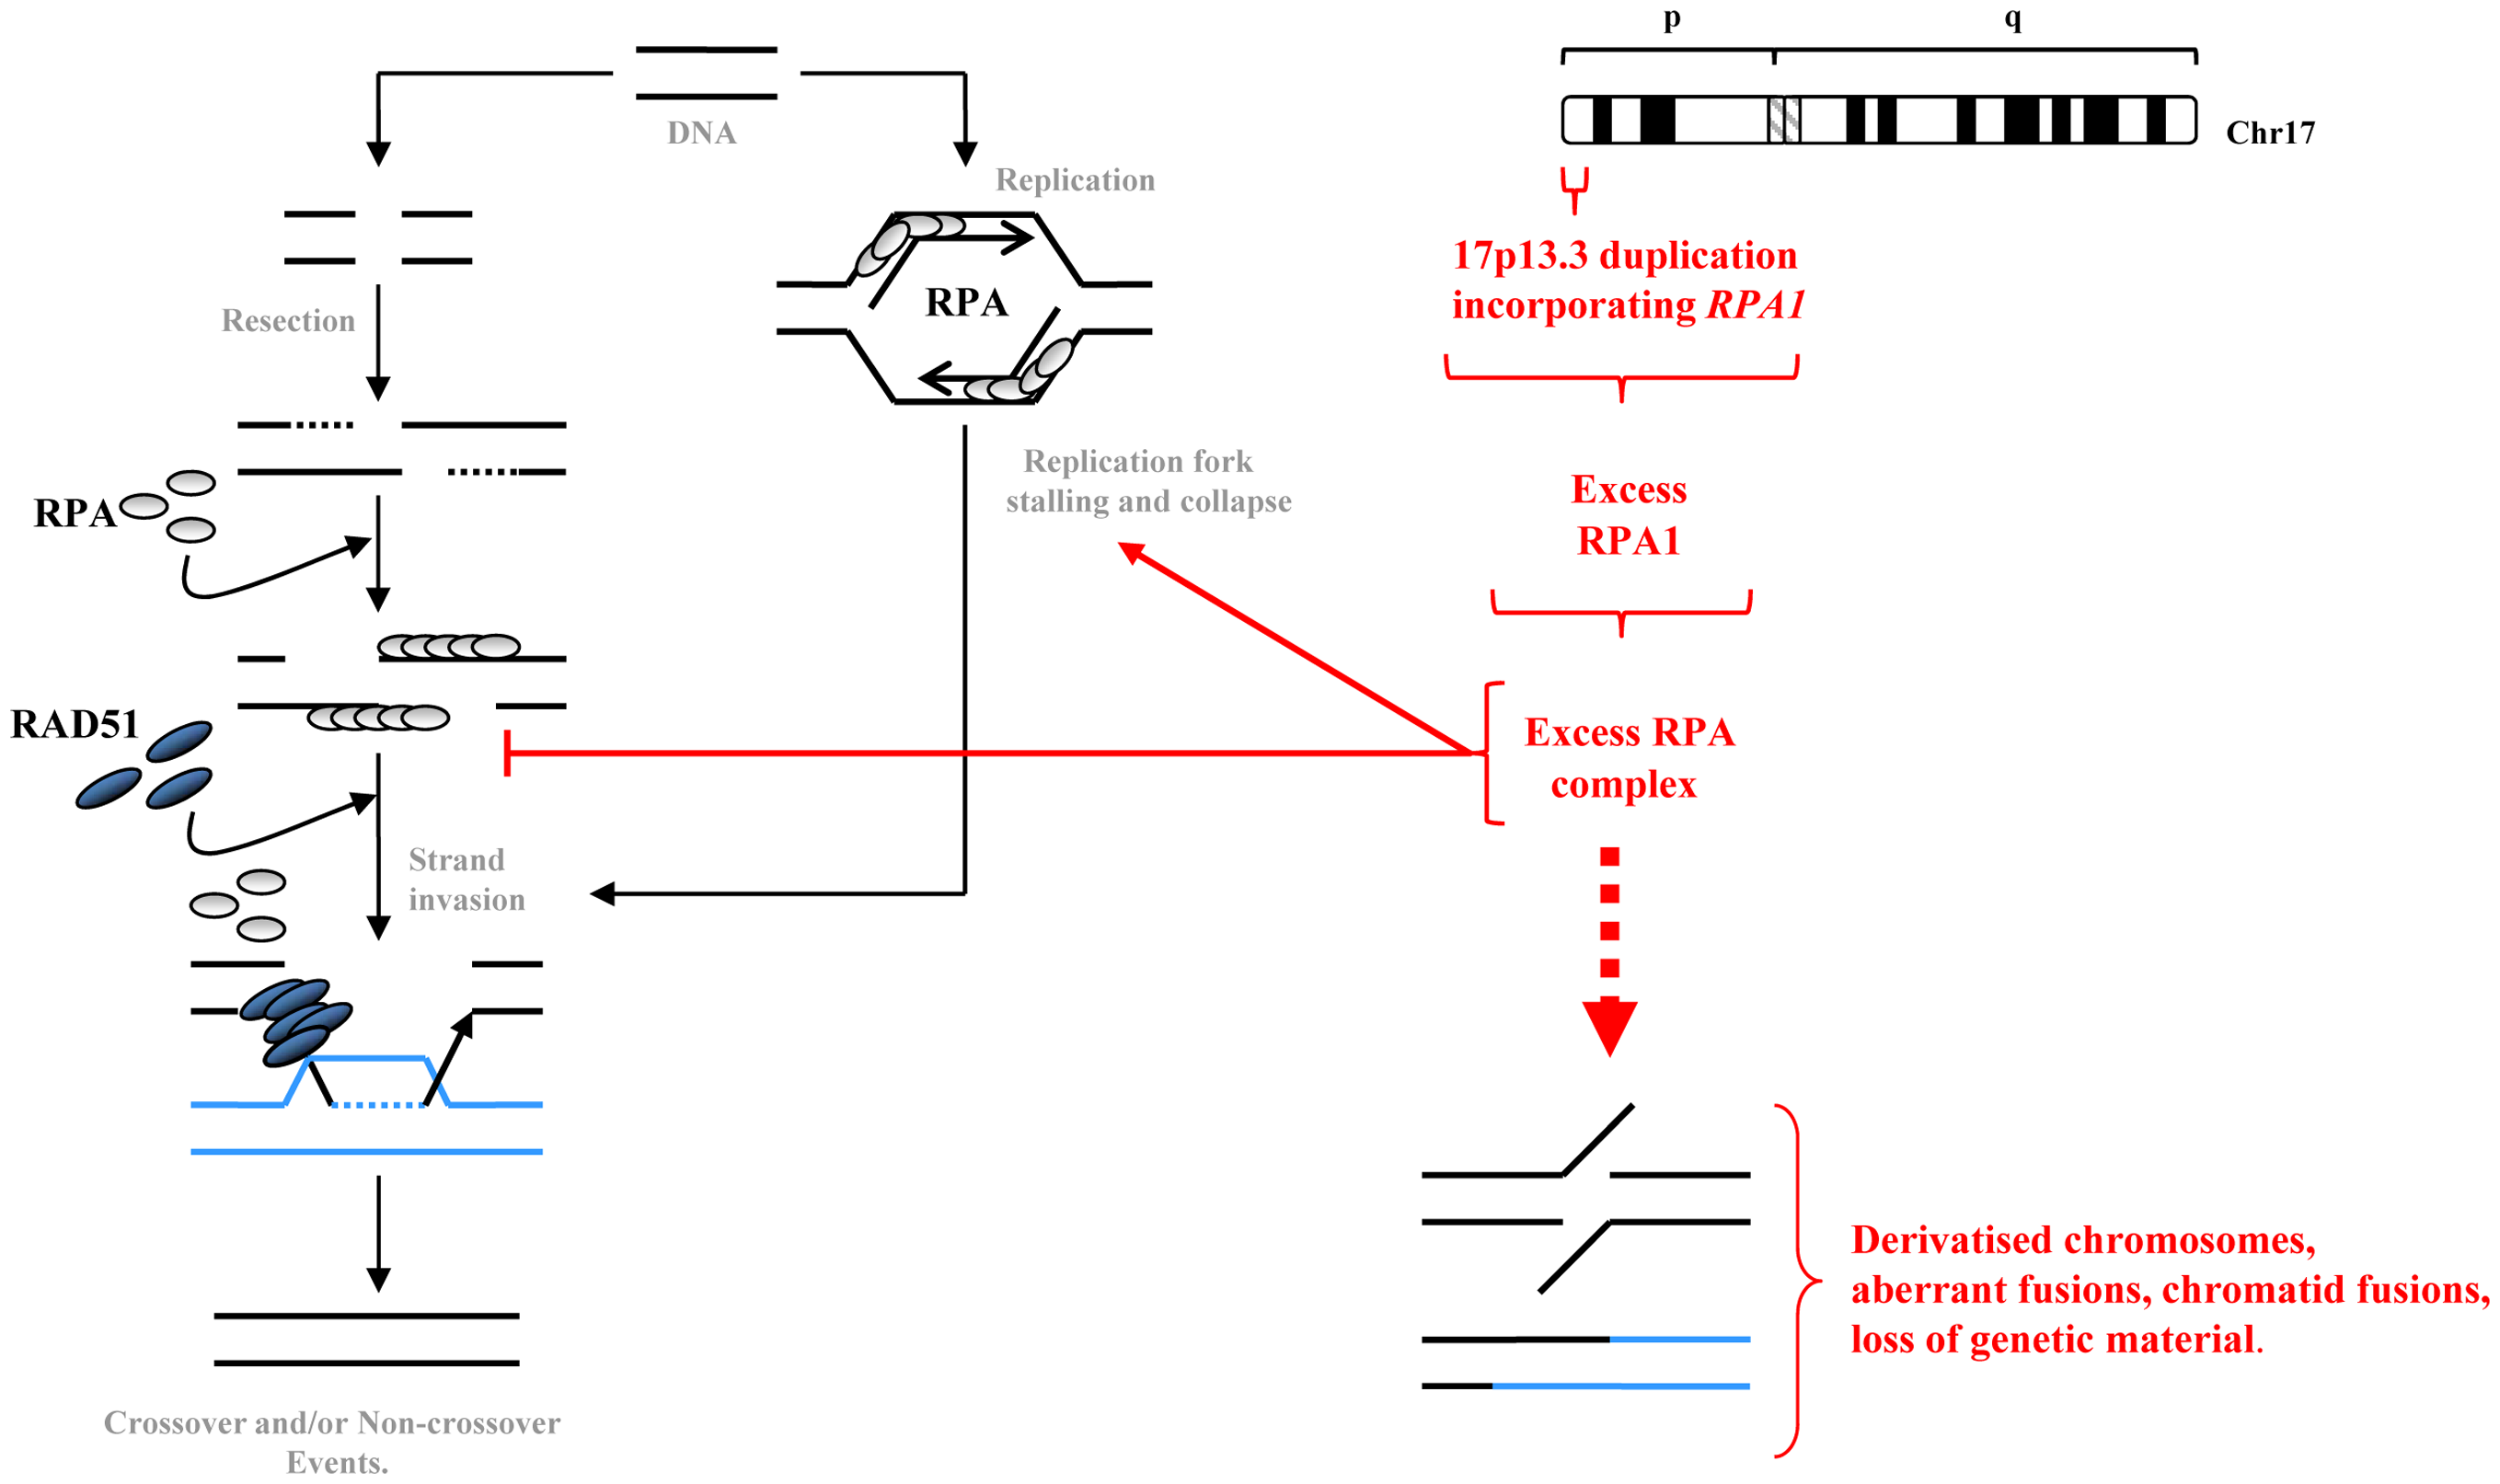 A summary model of how elevated RPA1 may adversely impact on homologous recombination.